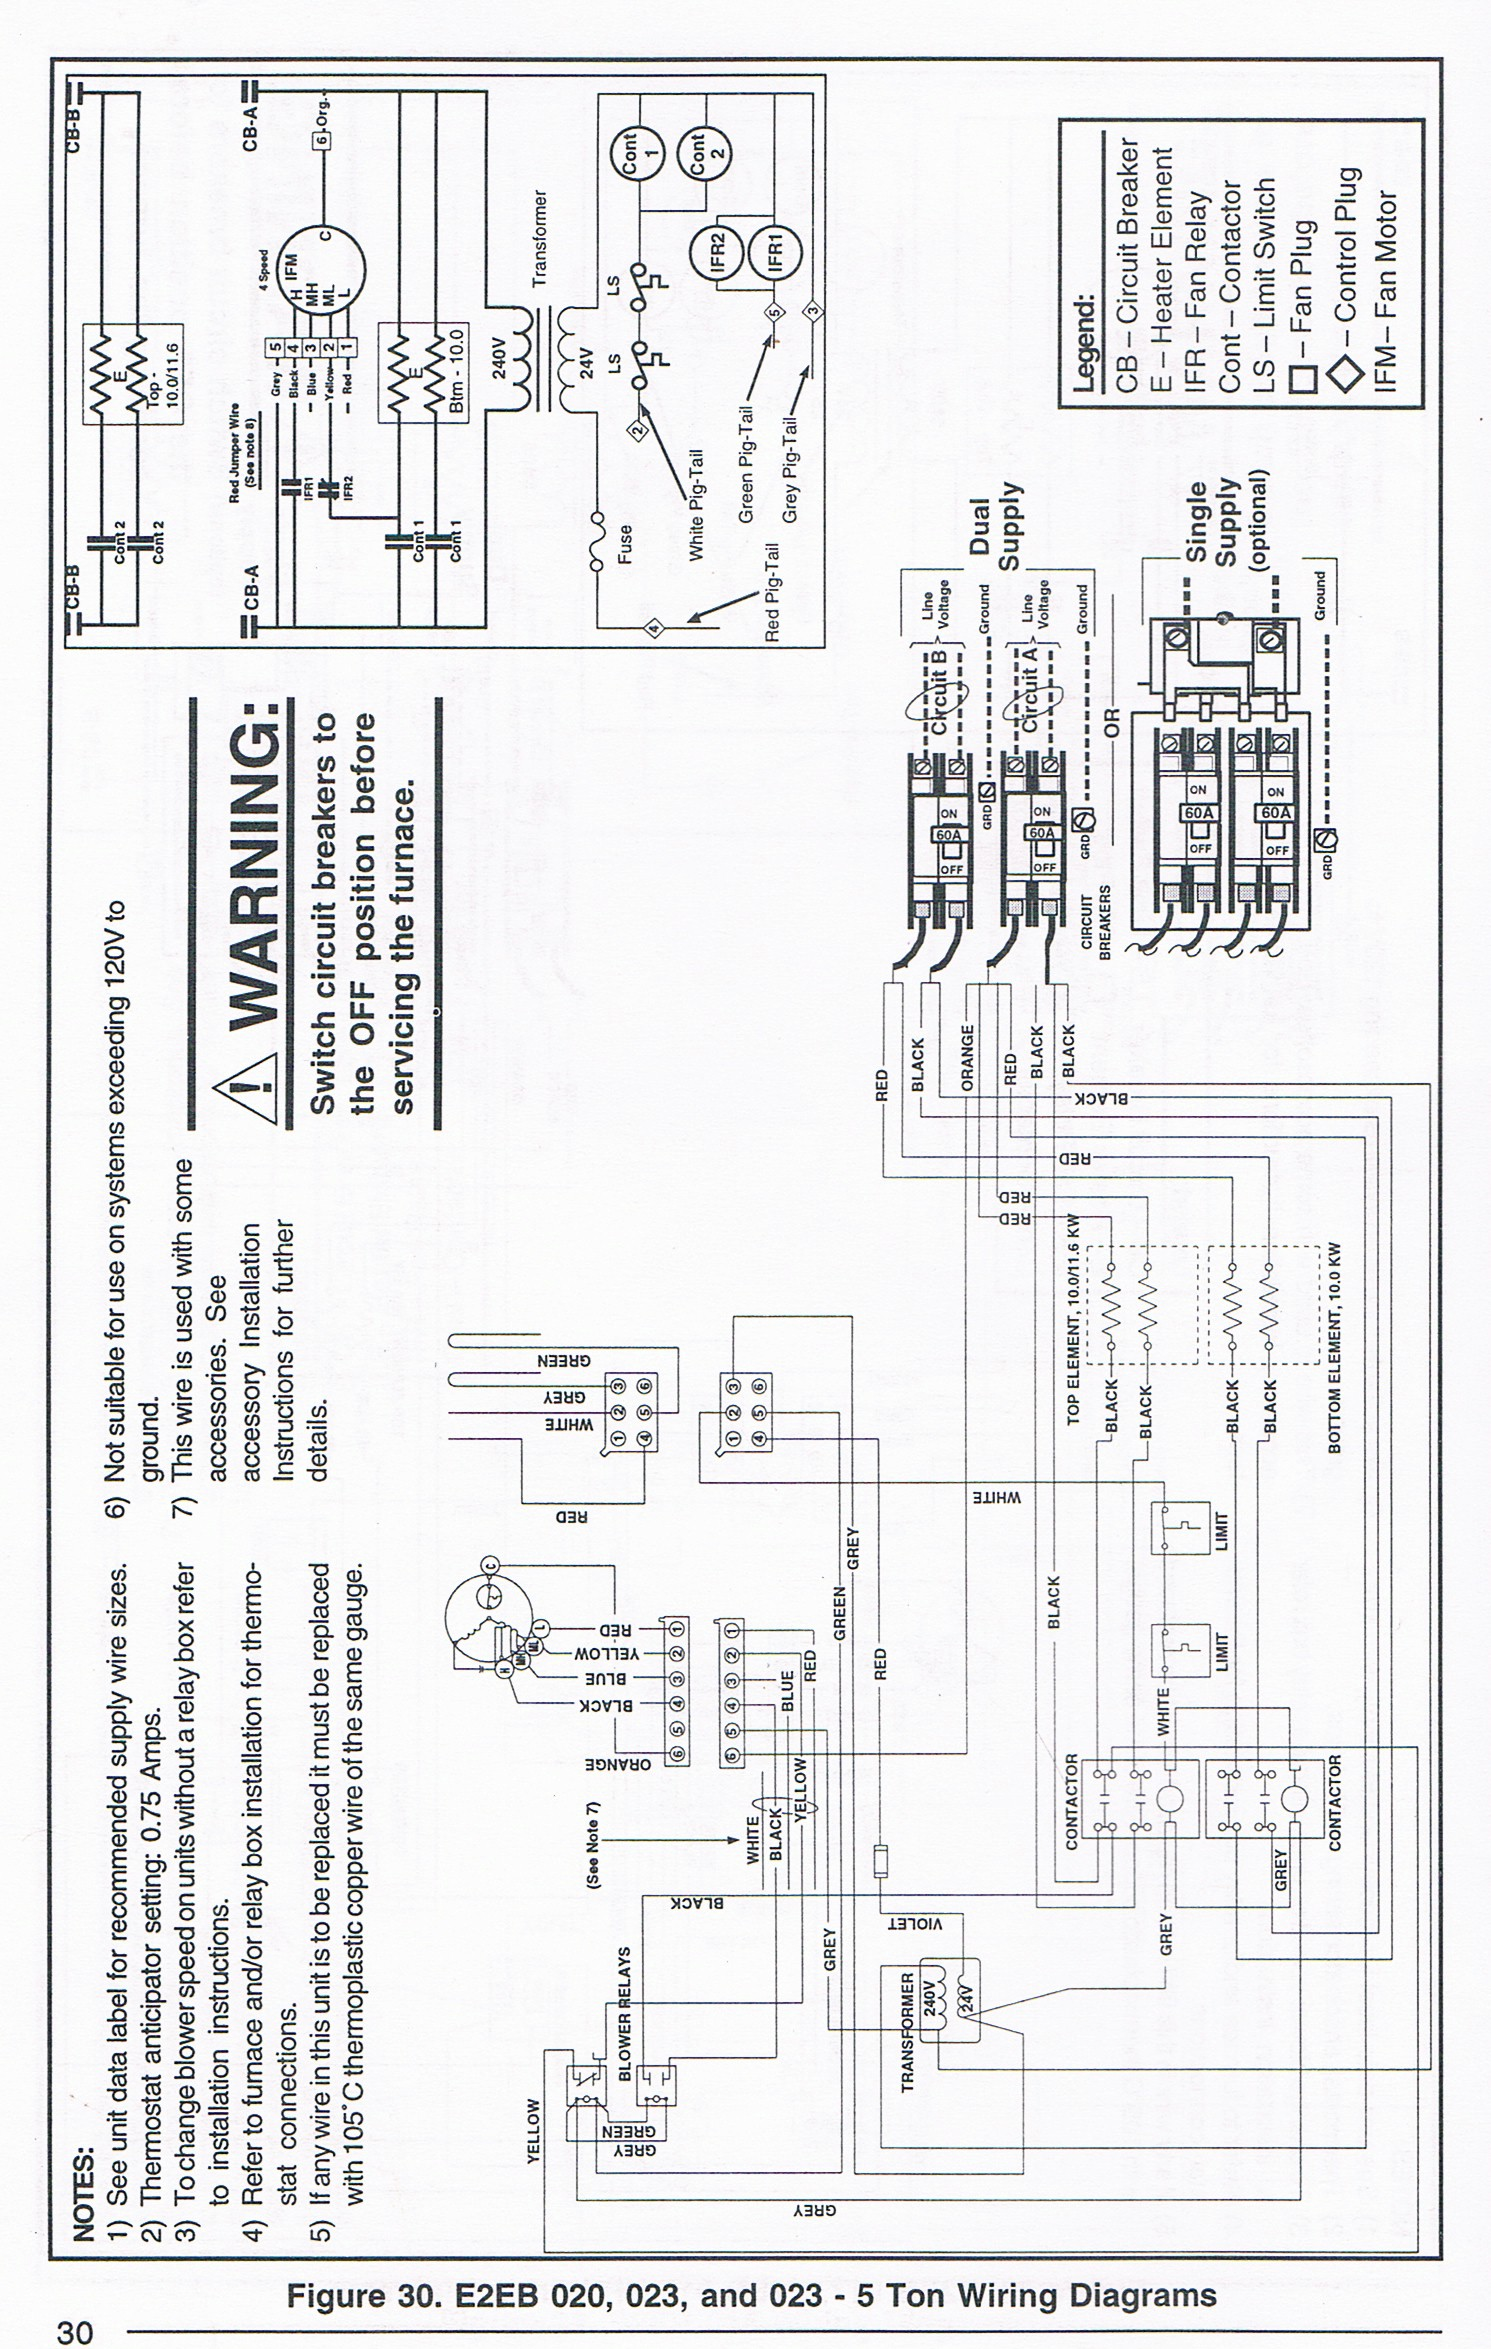 hight resolution of 2011 05 04 234443 e2eb nordyne electric furnace wiring diagram wirdig readingrat net e2eb 017ha wiring diagram at